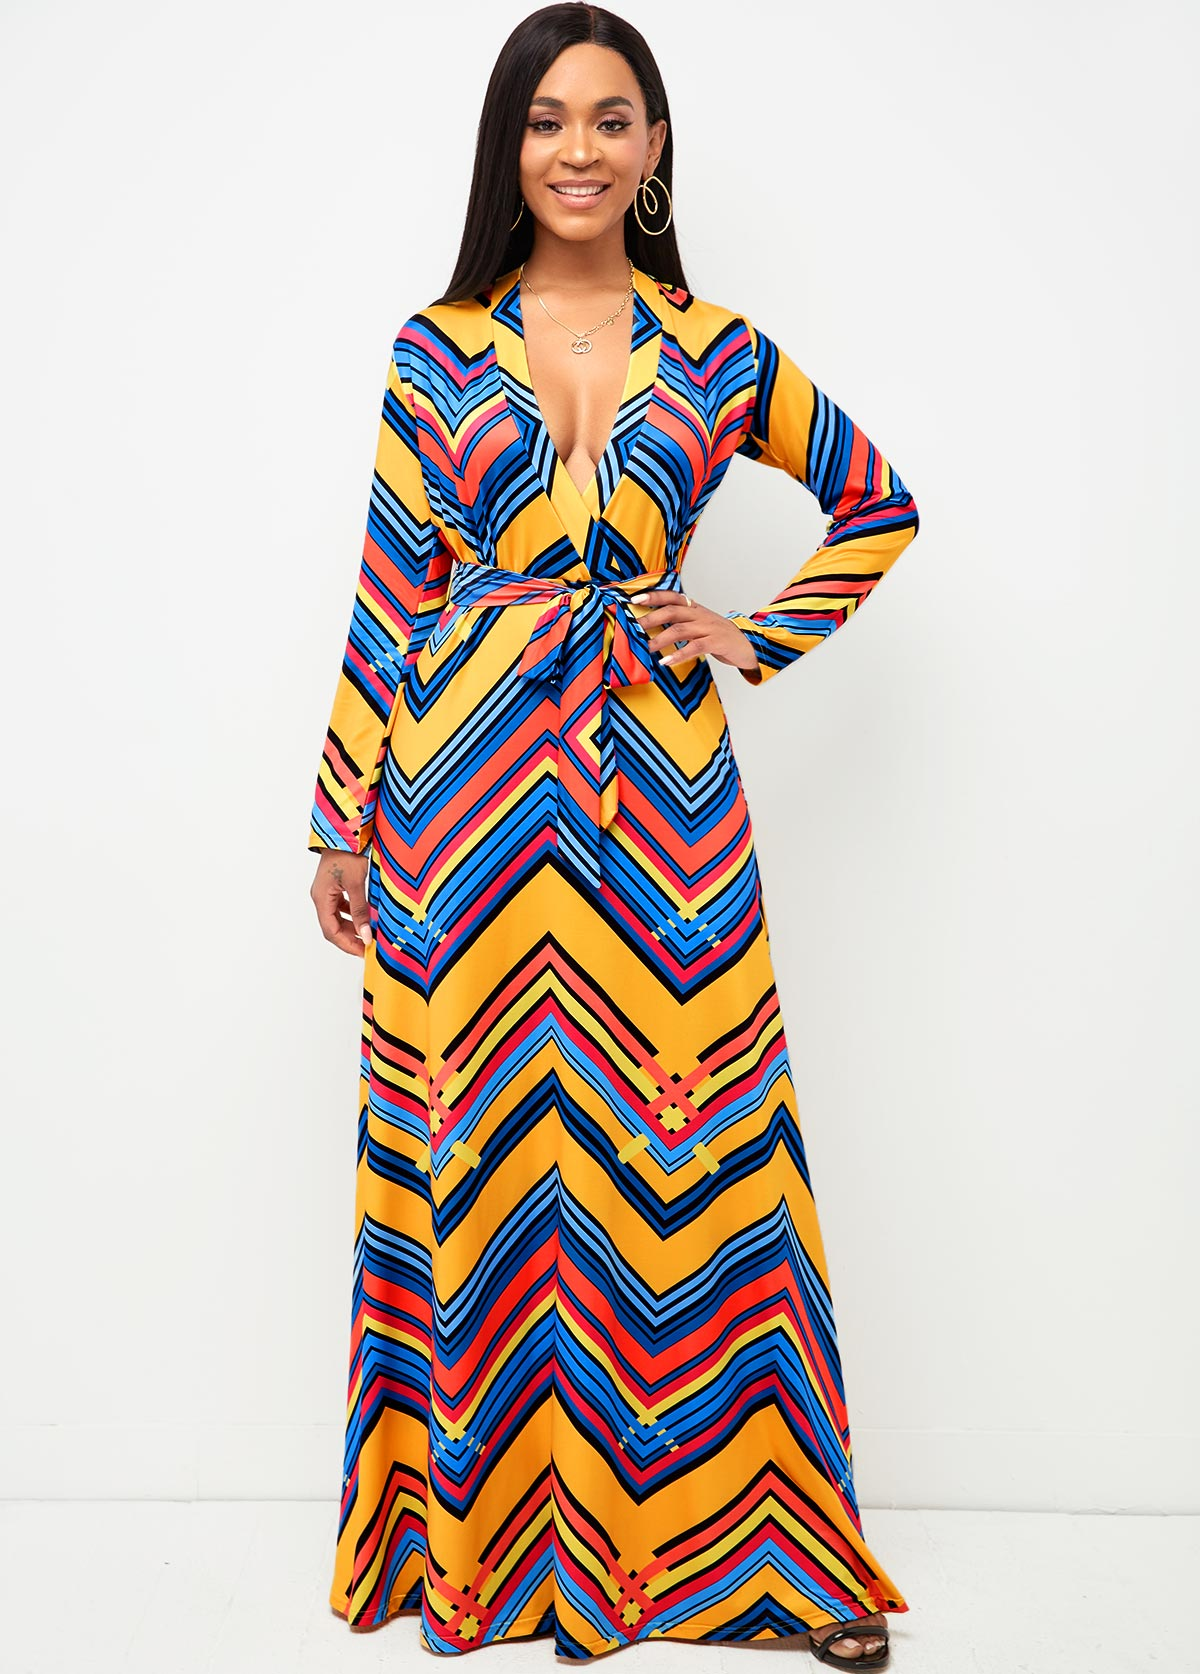 V Neck Geometric Print Belted Dress